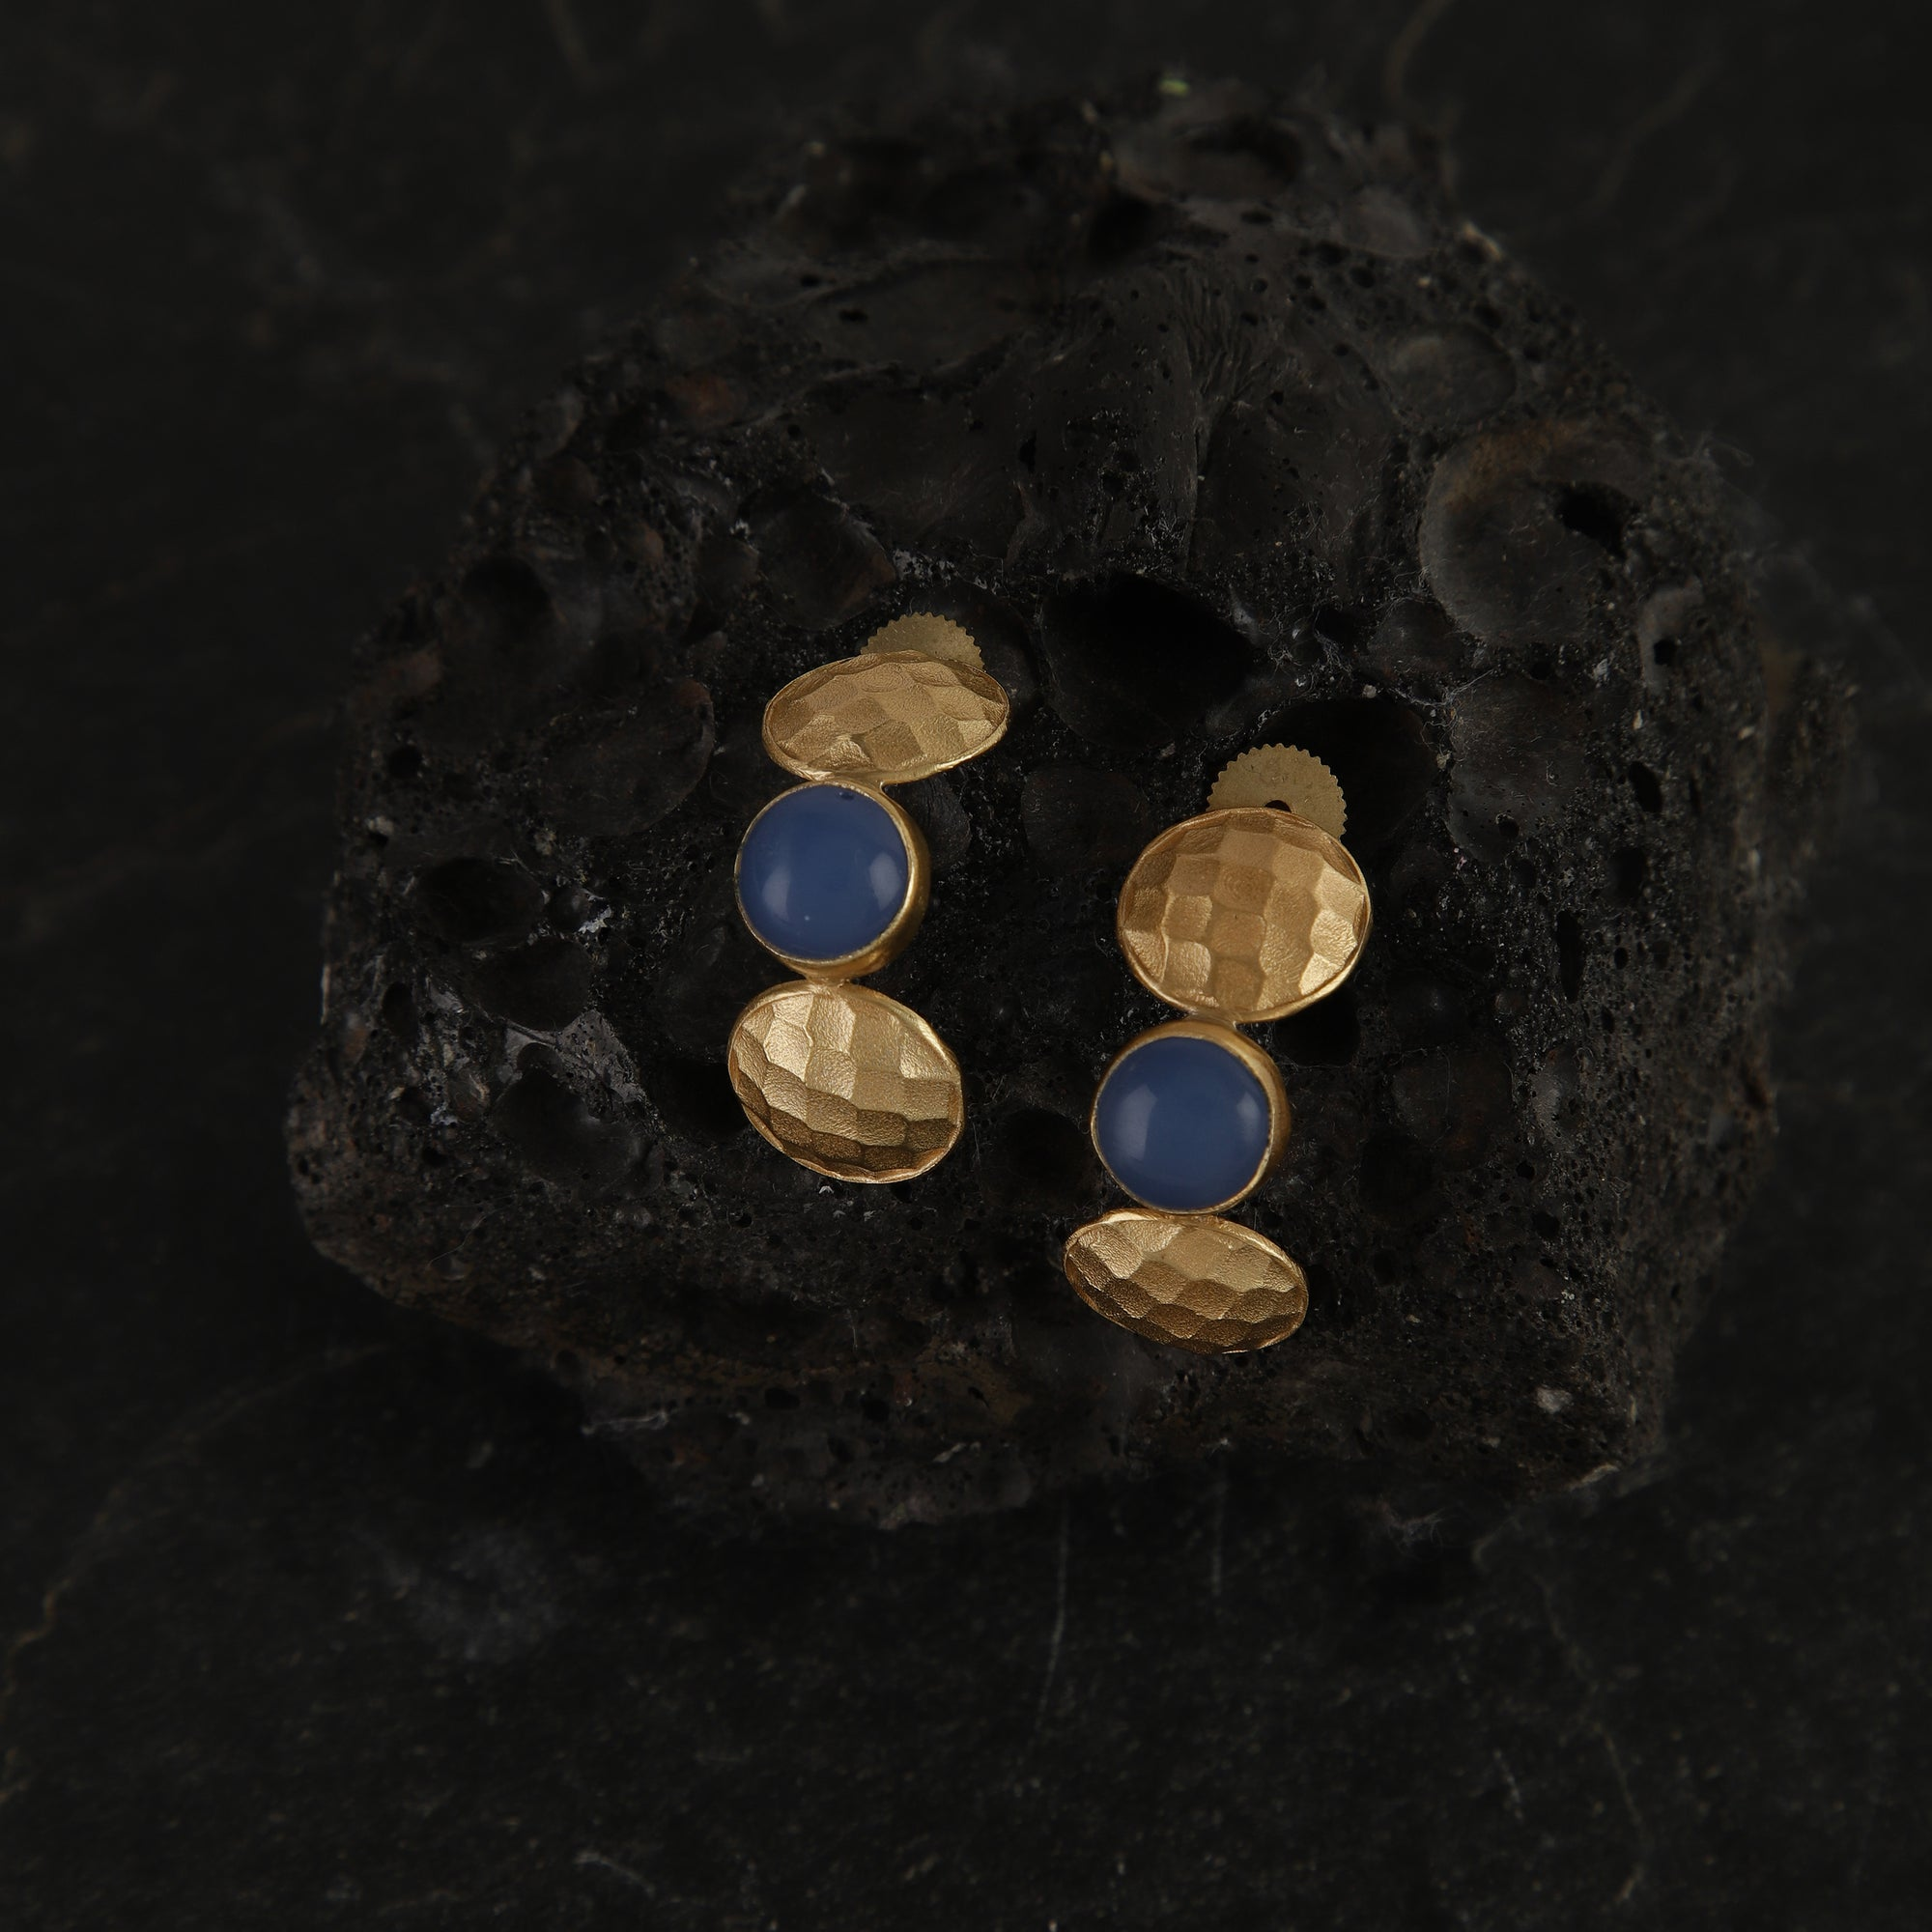 jewelry - berserk - Gold Plated Lapis Half Hoops